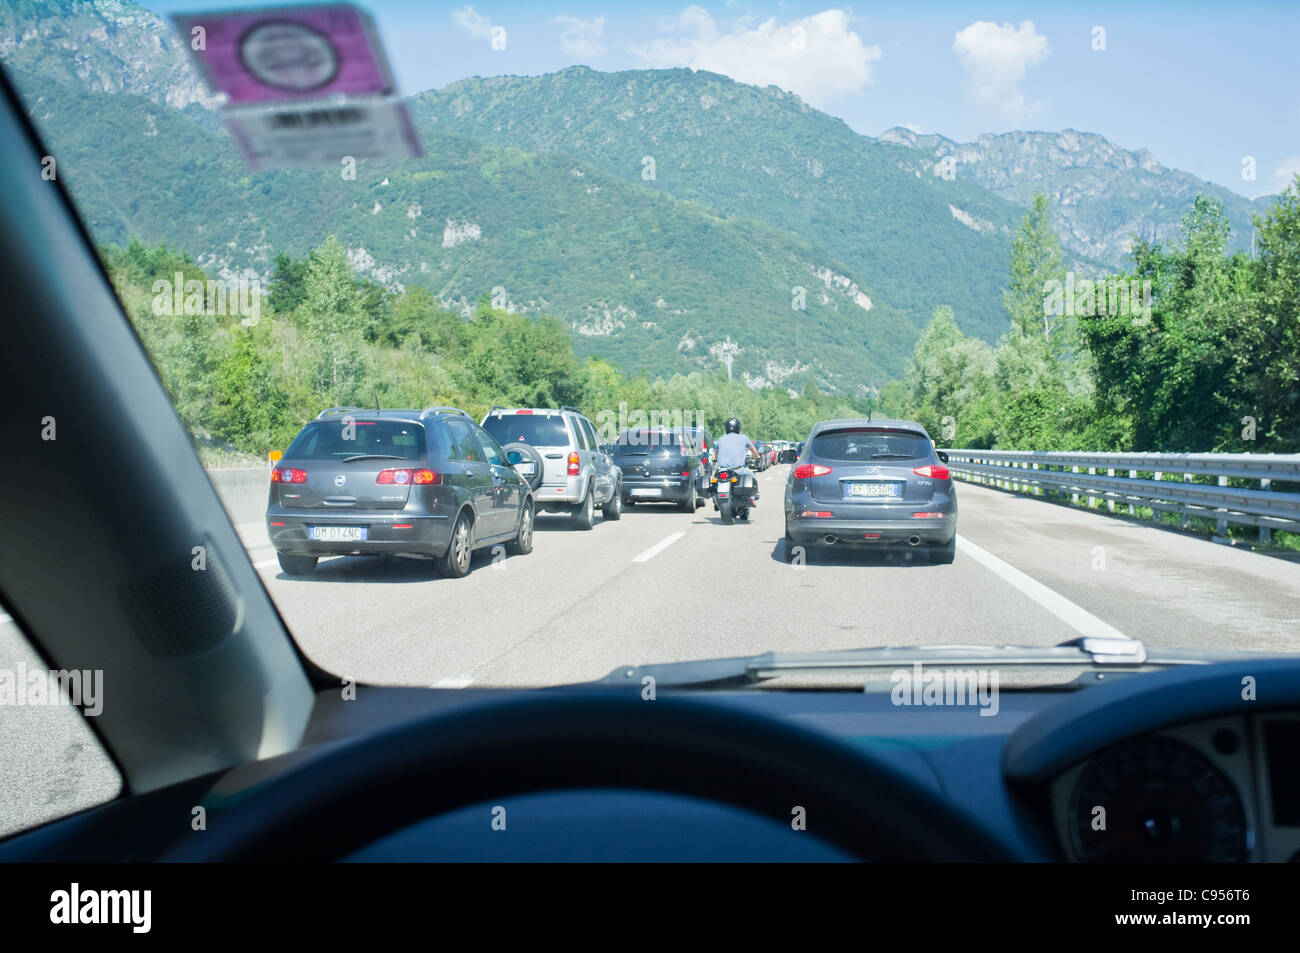 Traffic congestion on road leading to the Dolomite Mountains in Italy. - Stock Image